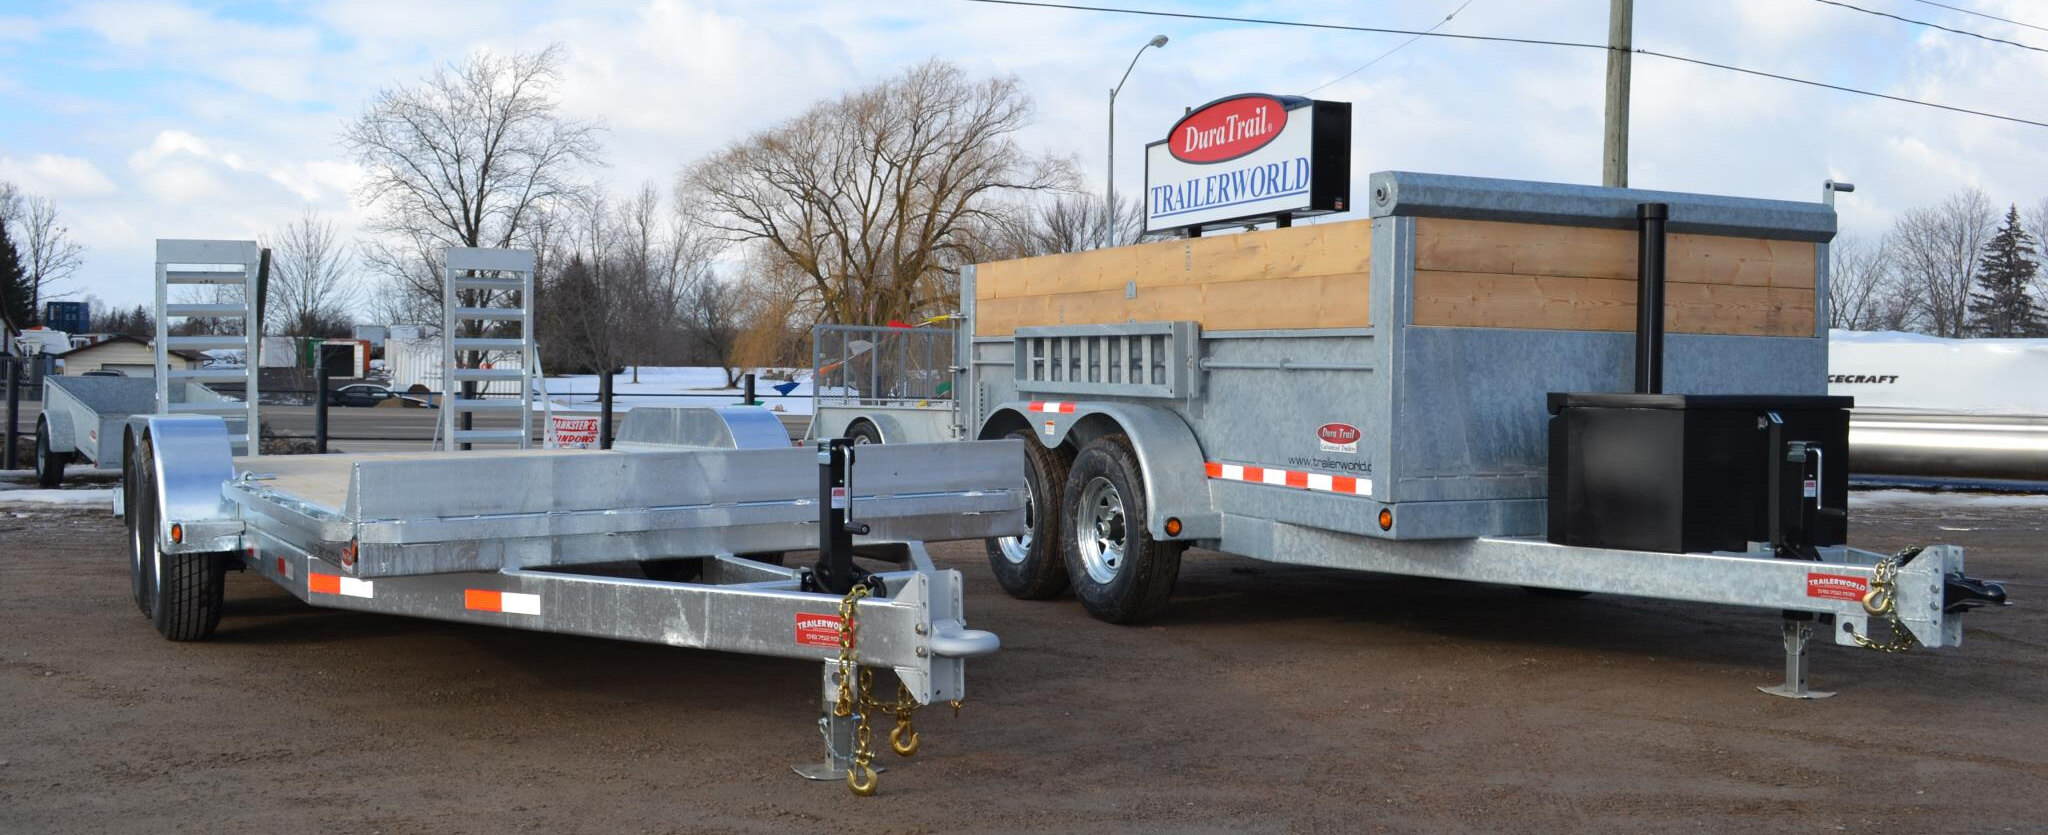 Trailerworld Brantford Ontario Utility Trailers Boat Continental Cargo Trailer Wiring Diagram Welcome To Cycle West Ltd